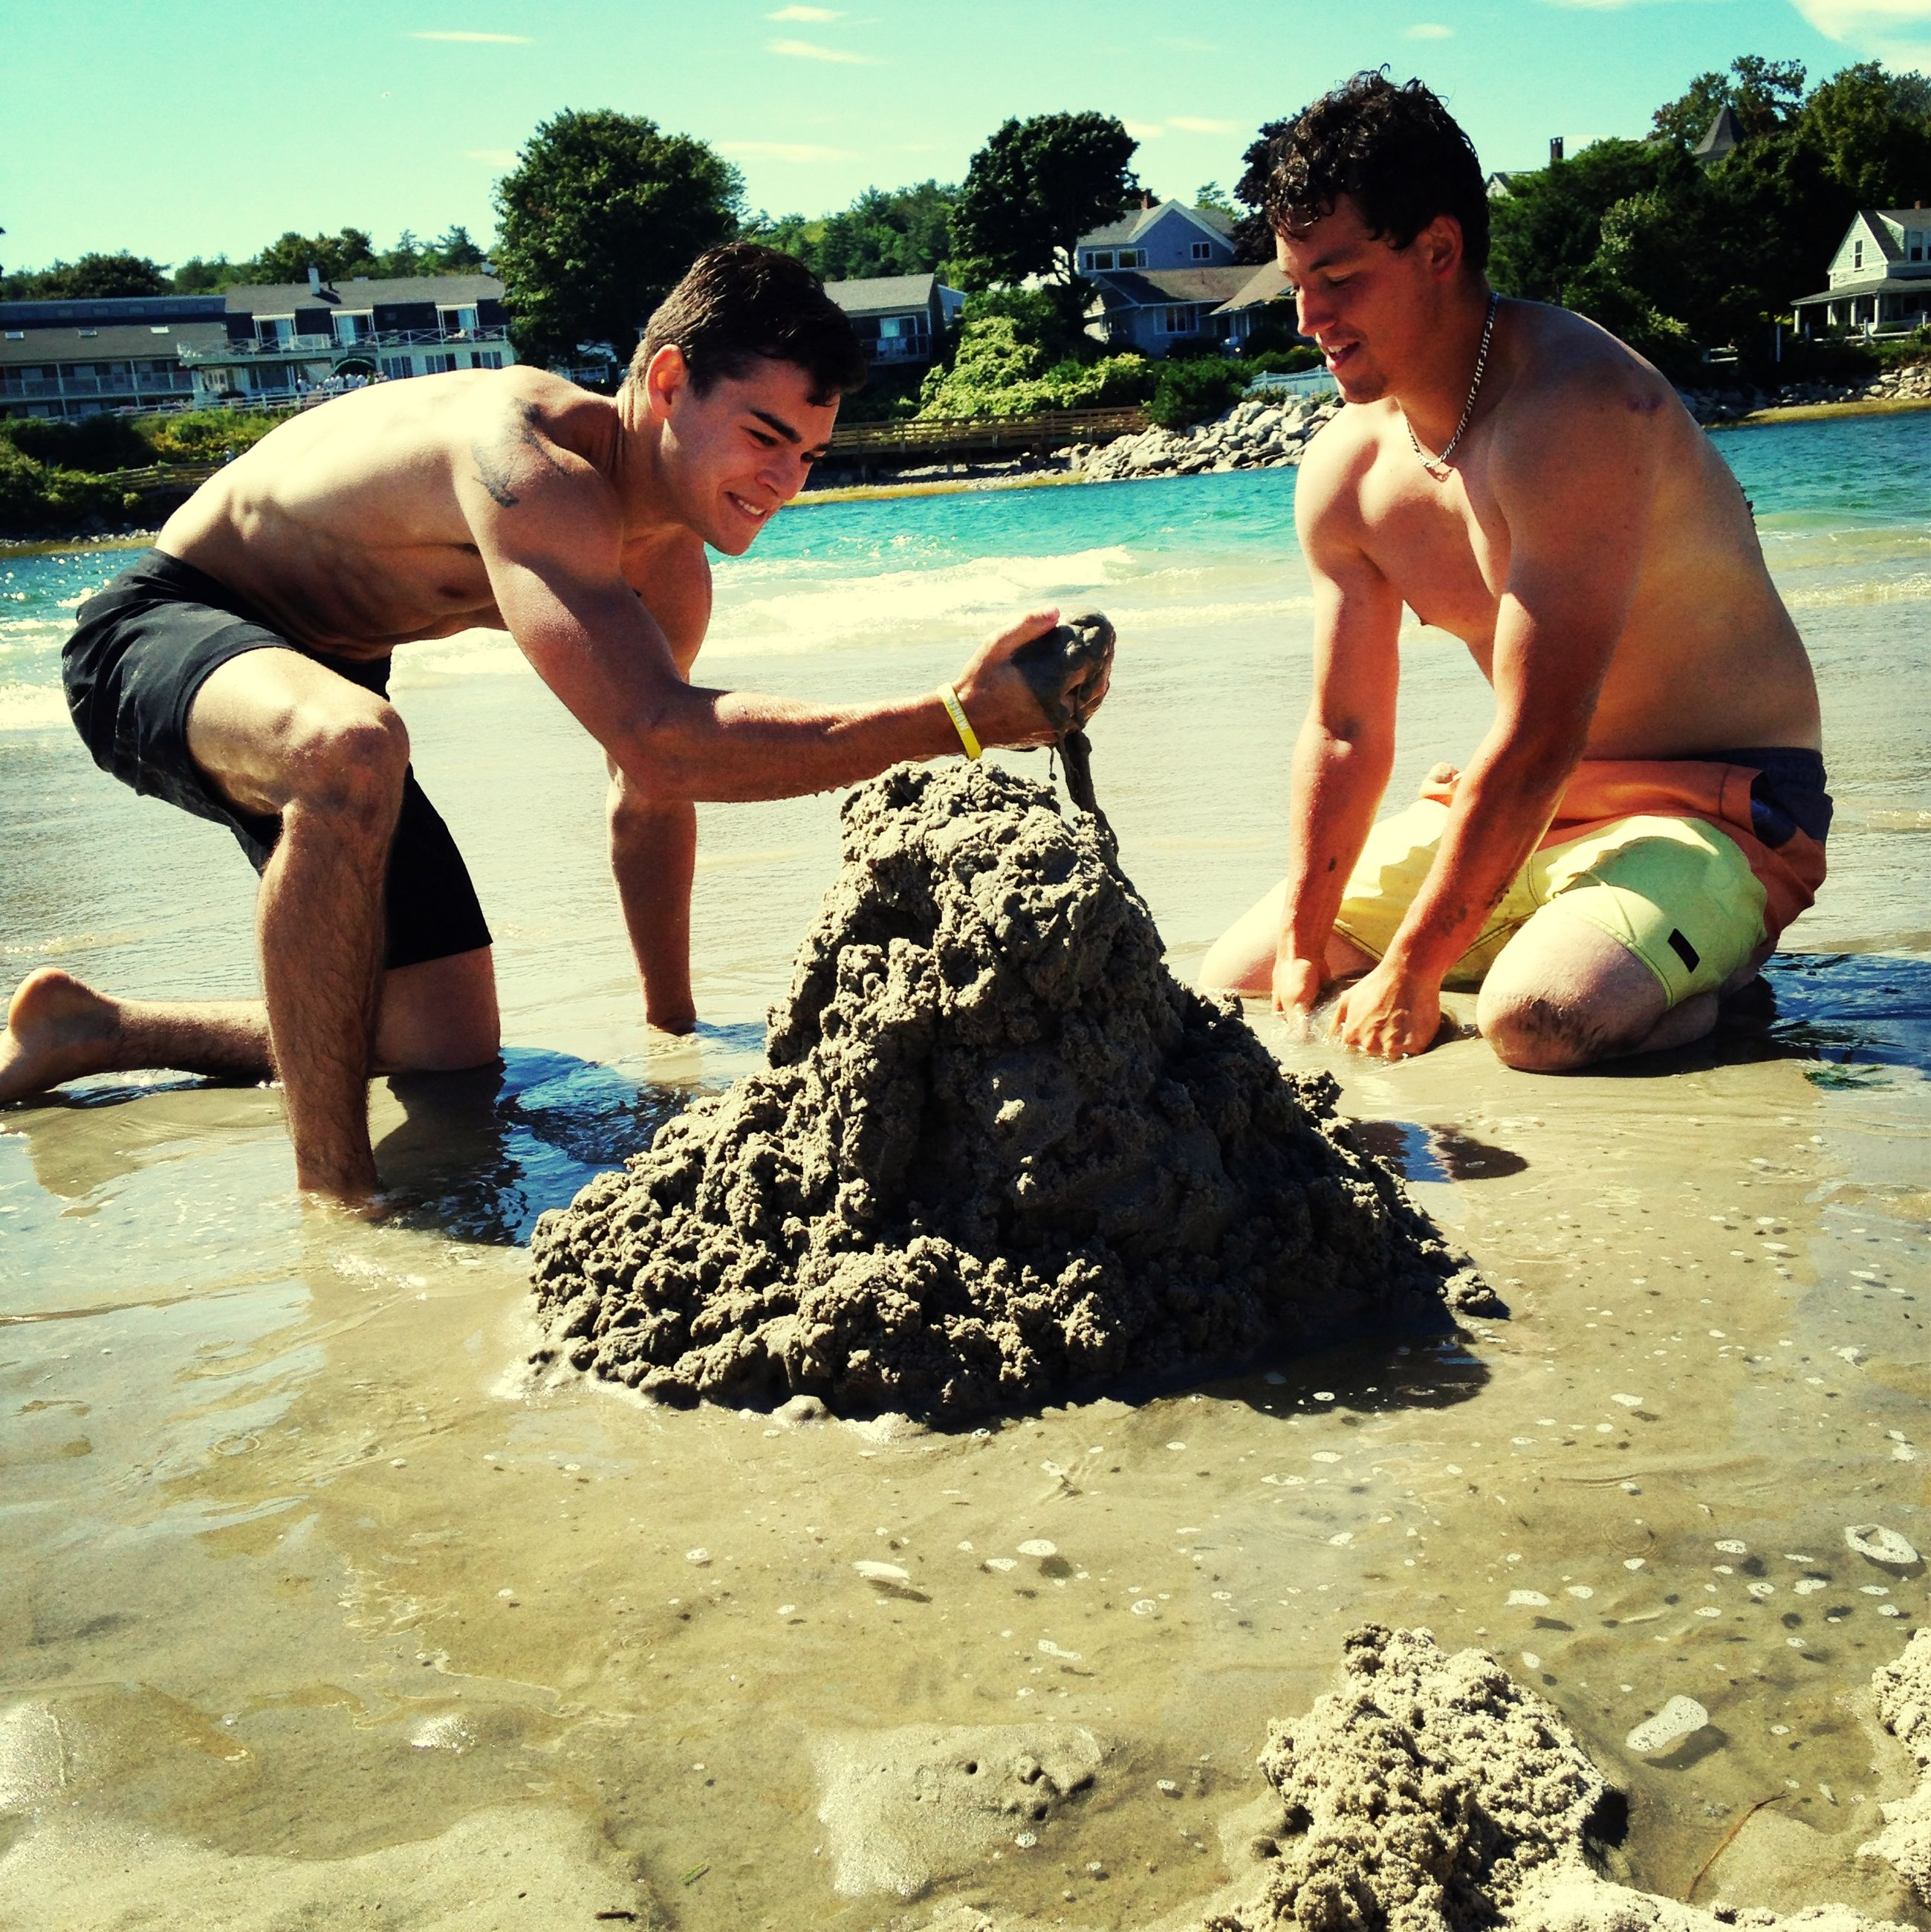 water, beach, lifestyles, leisure activity, person, togetherness, sea, vacations, sand, bonding, childhood, enjoyment, boys, shore, shirtless, young men, elementary age